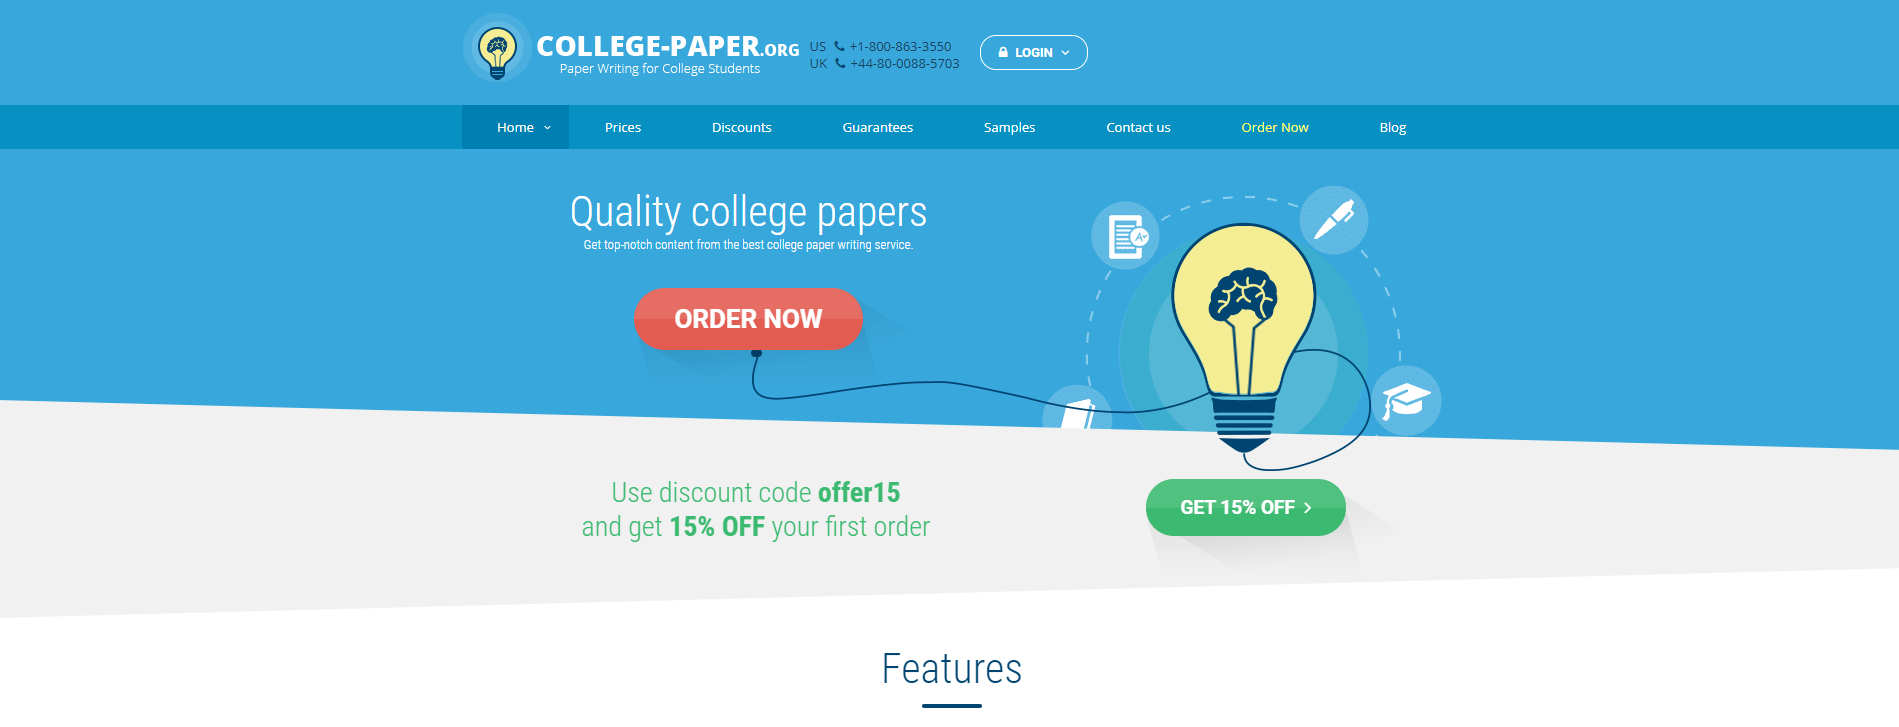 College Paper - Best essay writing service